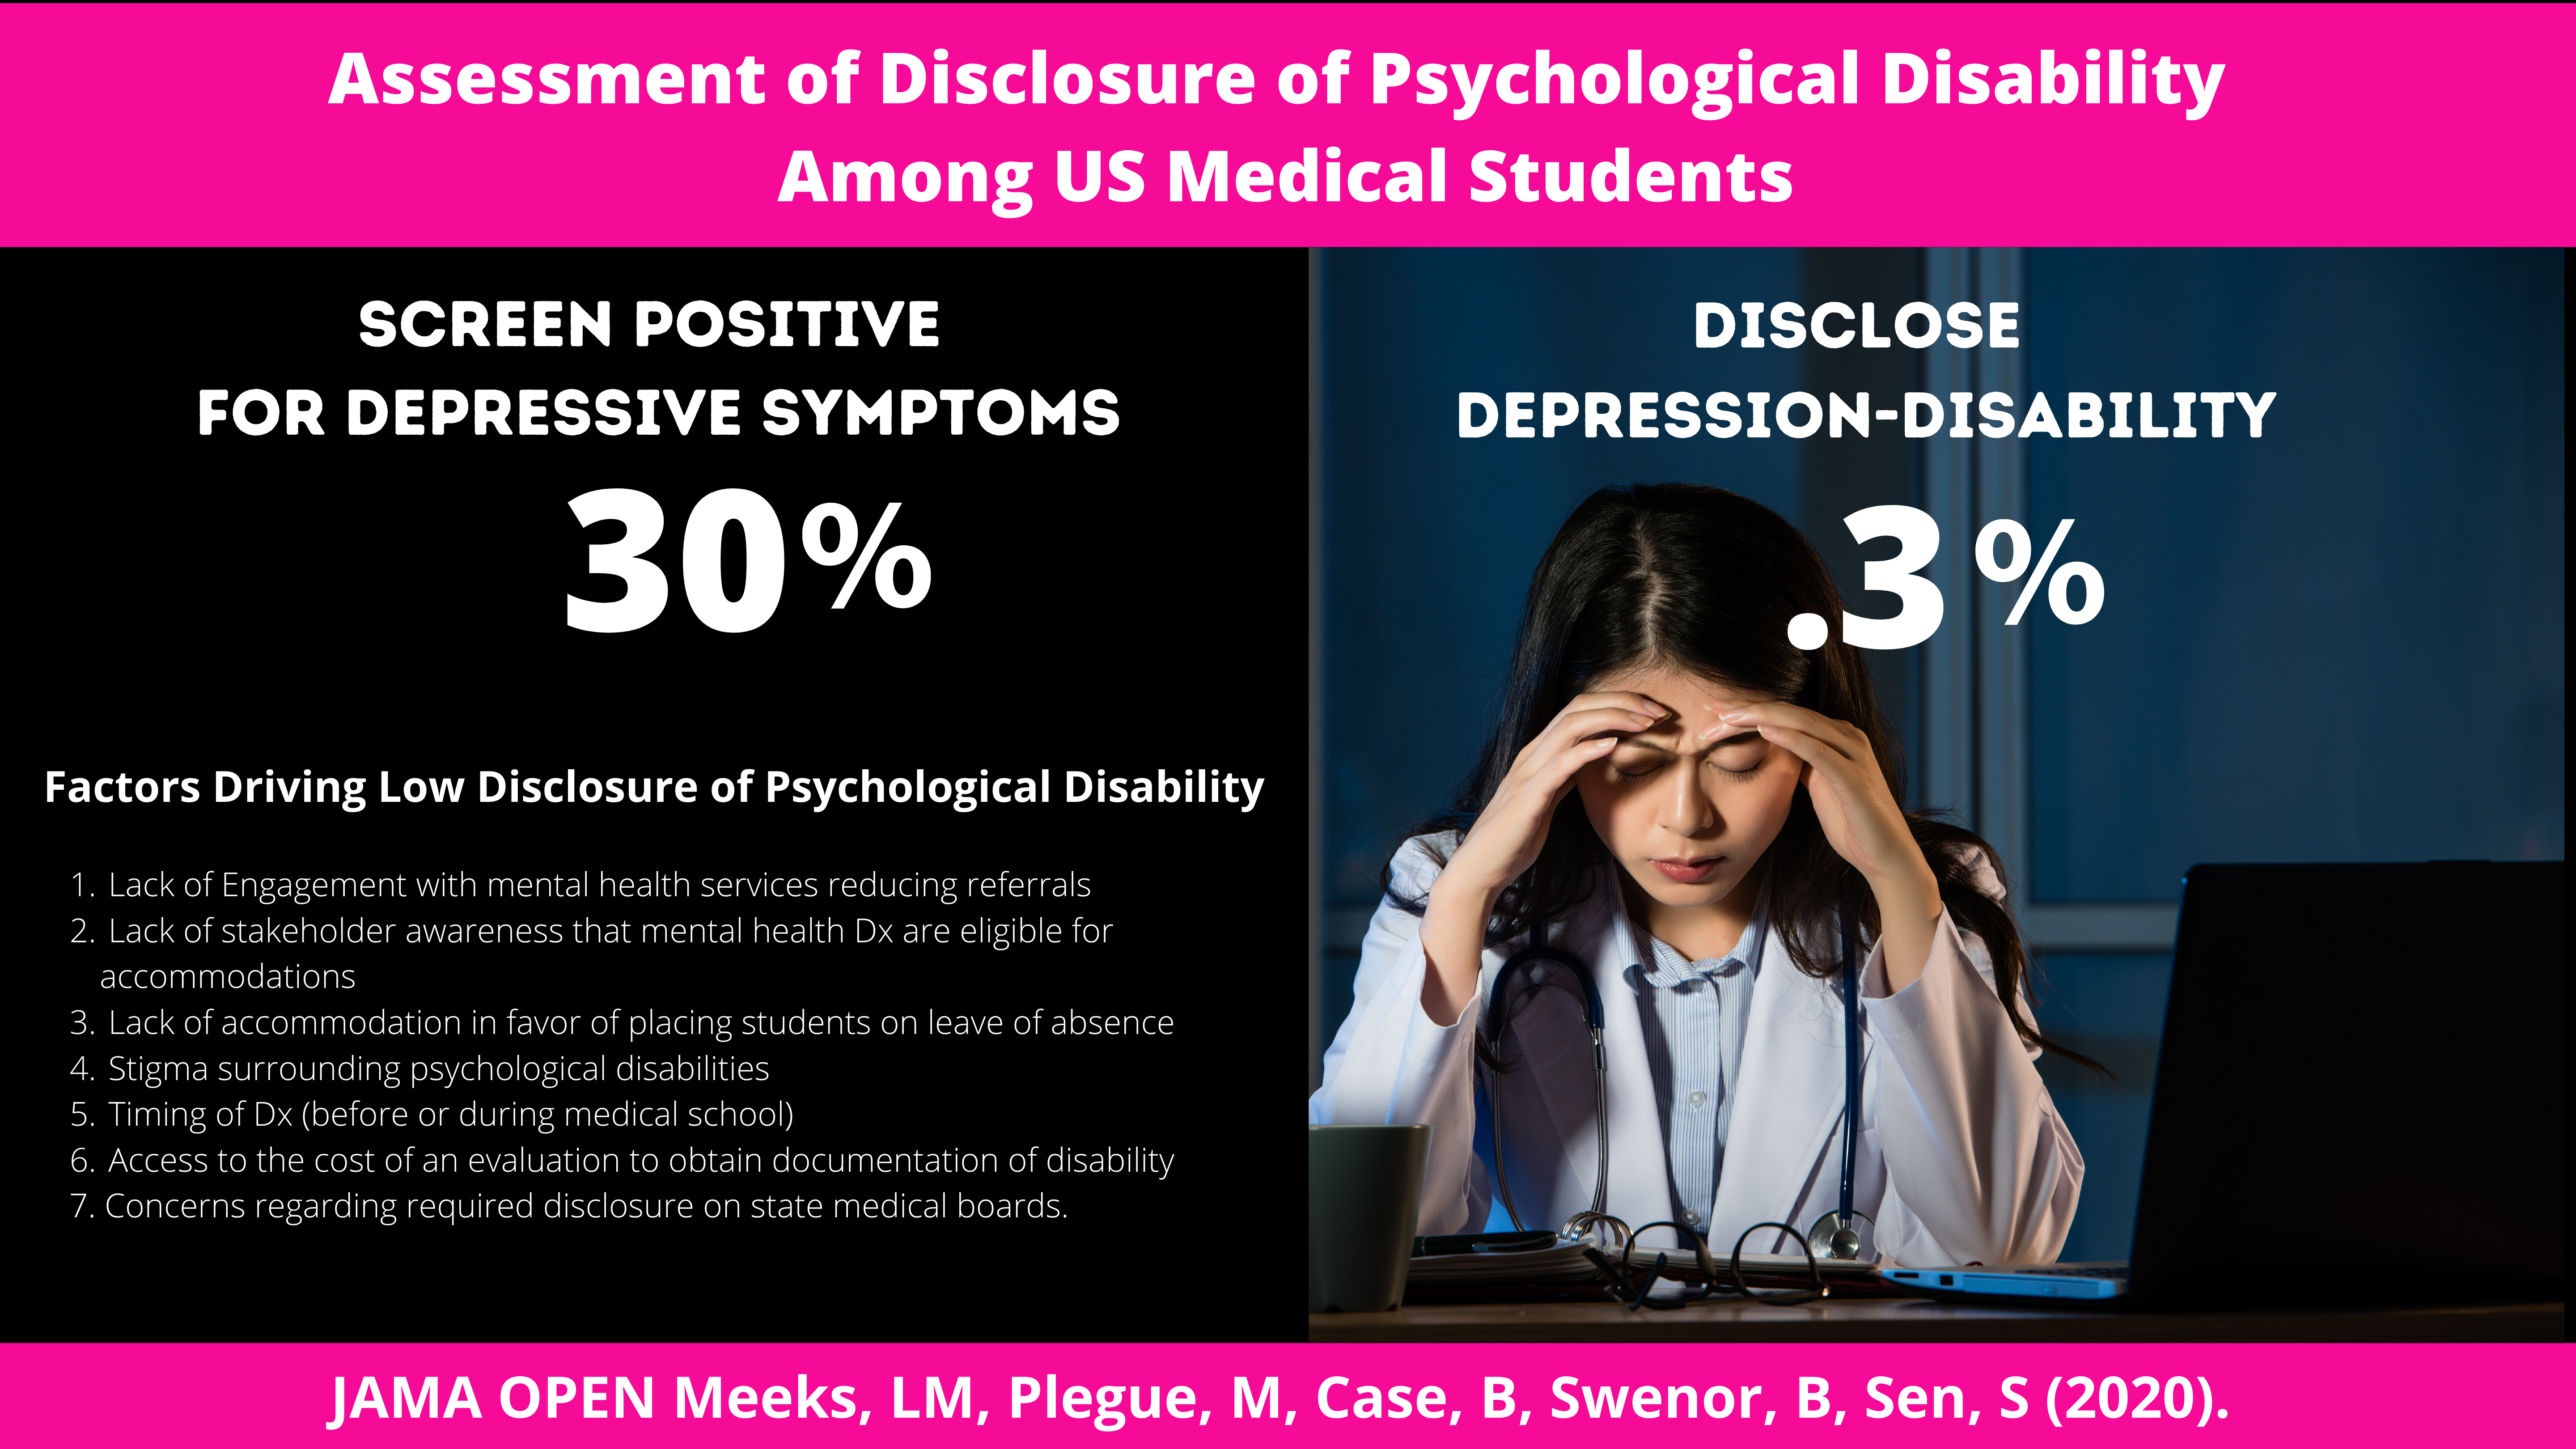 Visual abstract for Assessment of Disclosure of Psychological Disability Among US Medical Students